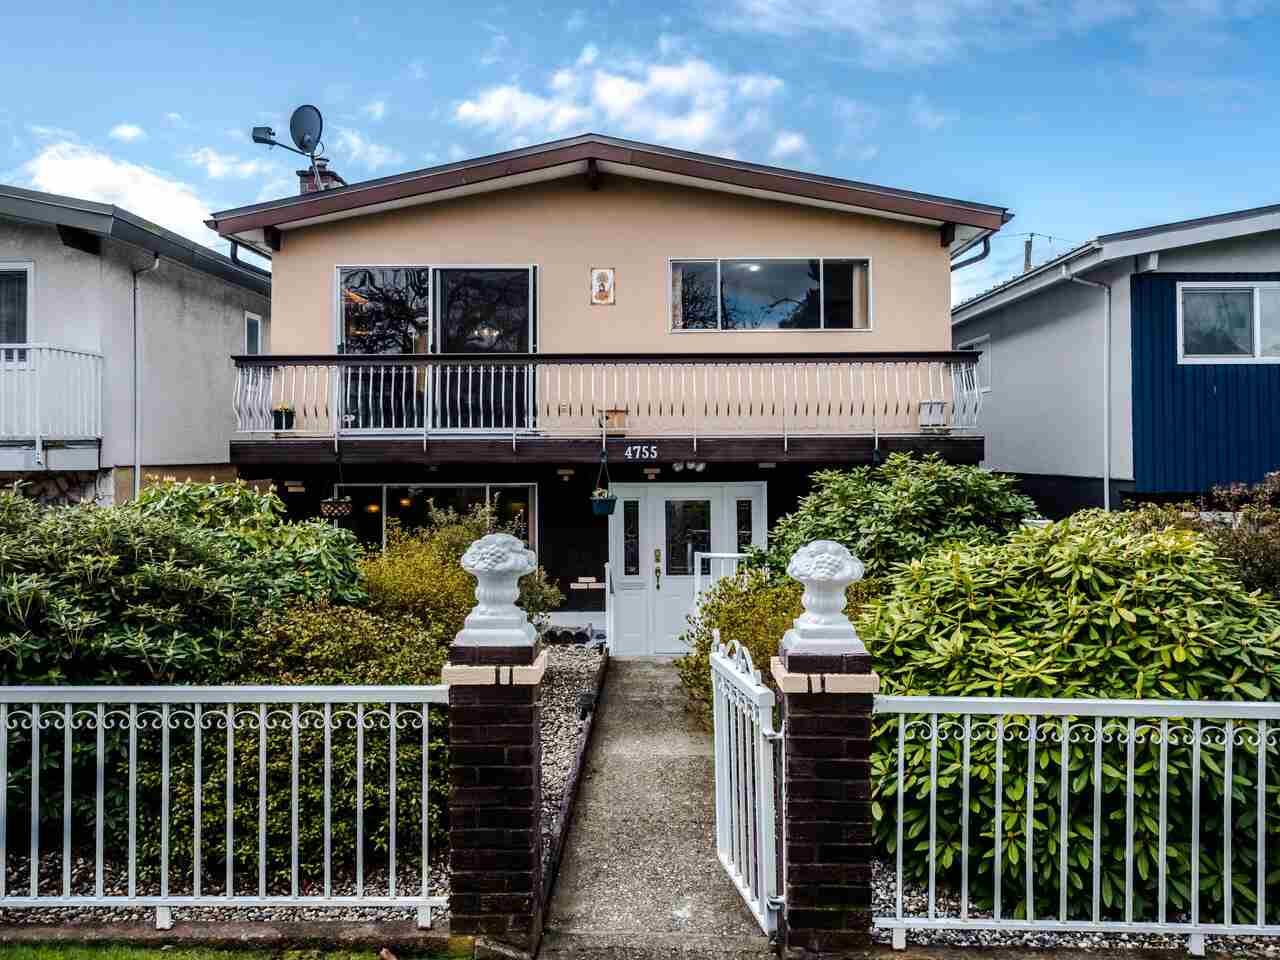 Main Photo: 4755 BEATRICE Street in Vancouver: Victoria VE House for sale (Vancouver East)  : MLS®# R2554309